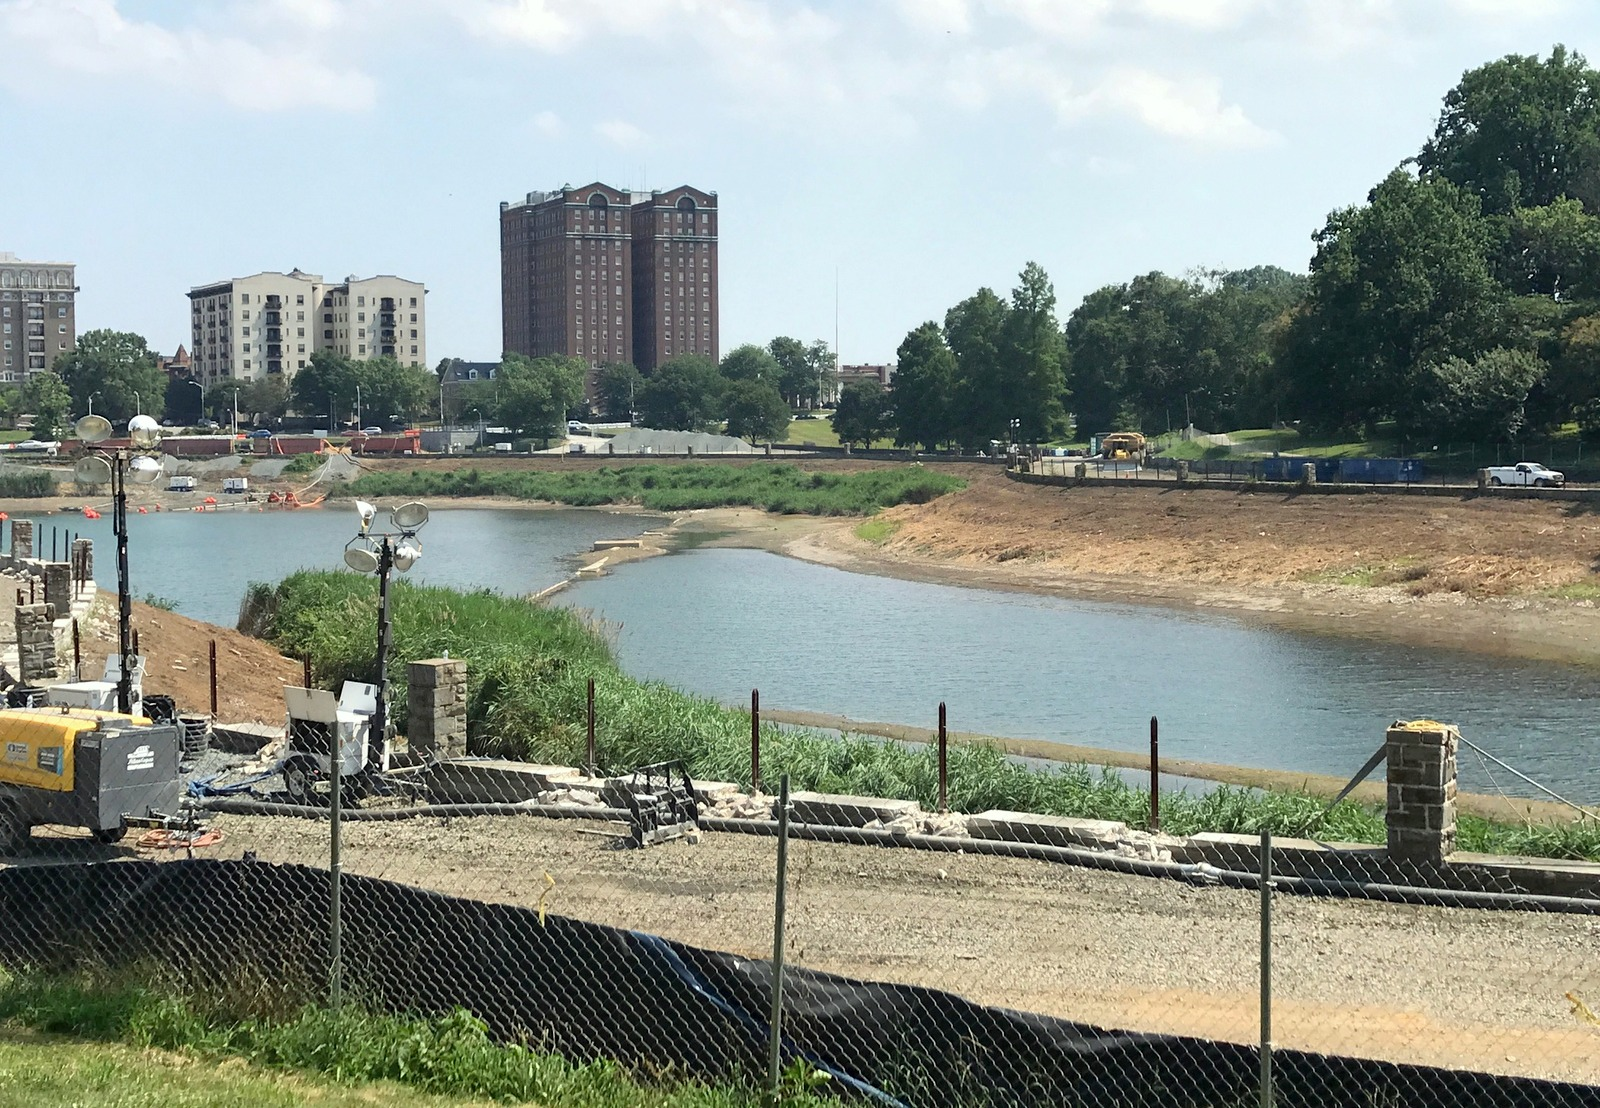 The drained portion of the original reservoir where the water tanks will be built. The city envisions an amphitheater, atheltic fields and other amenities atop the buried water tanks. (Mark Reutter)